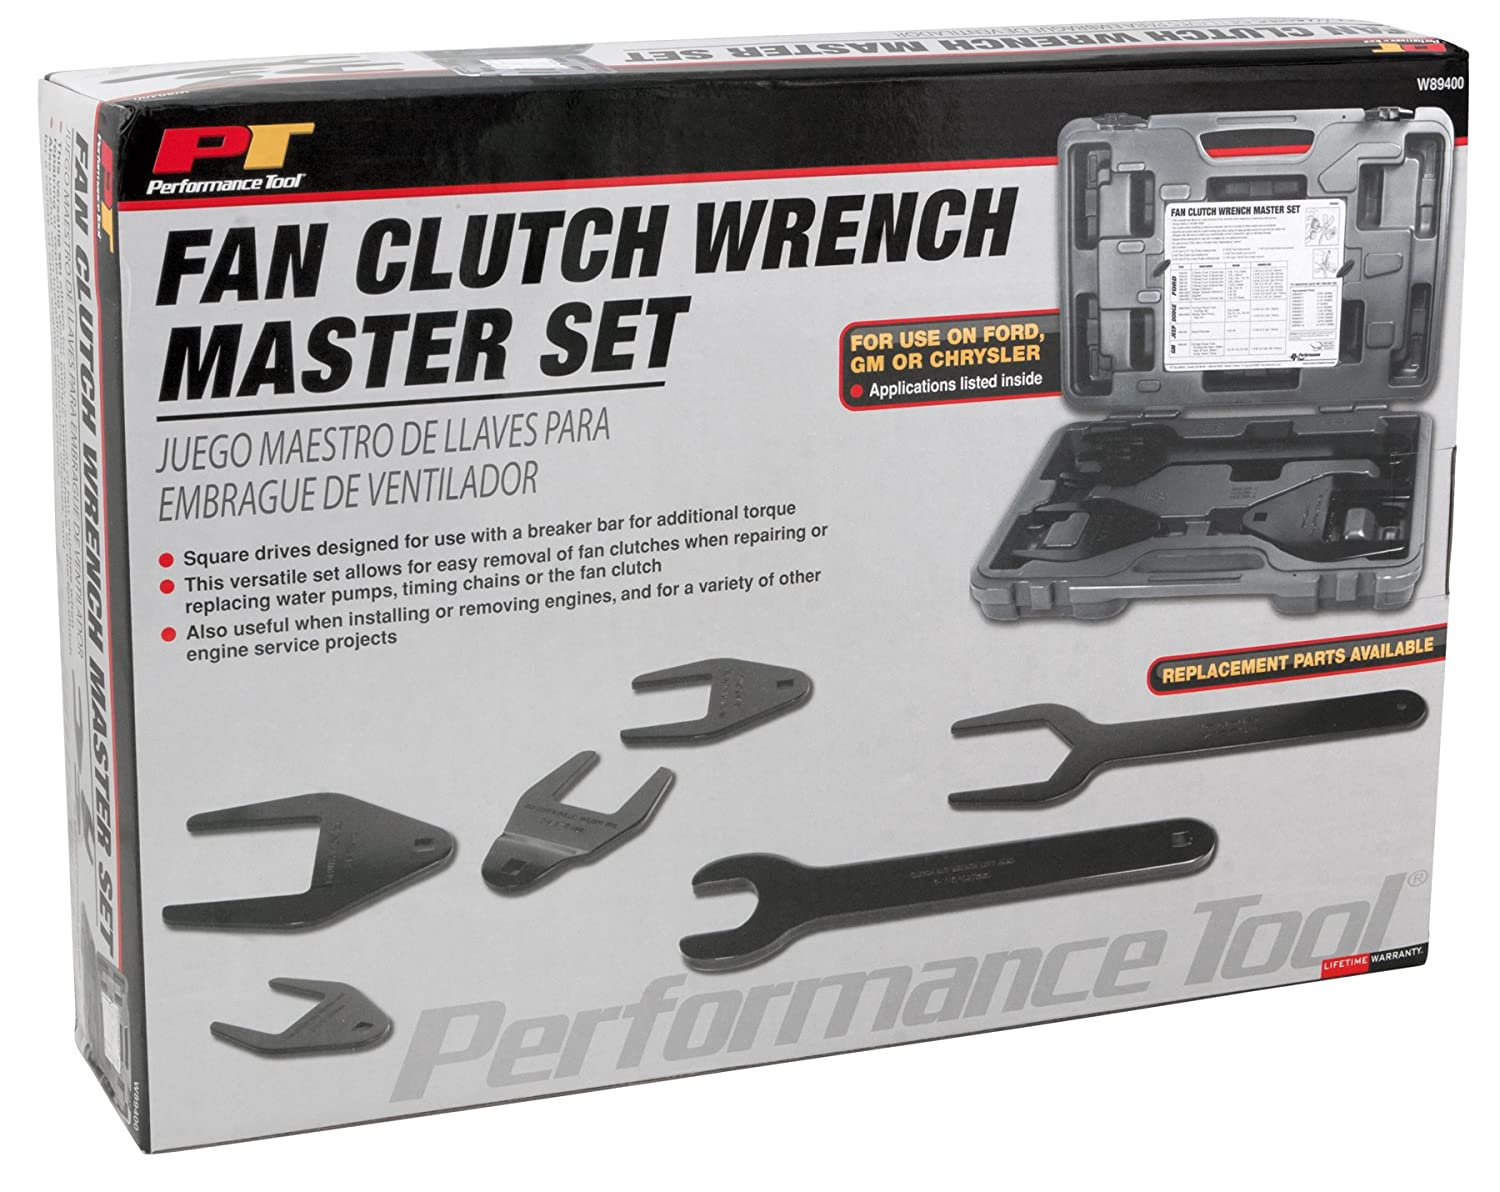 Amazon.com: Performance Tool W89400 10-Piece Fan Clutch Wrench Set: Home Improvement